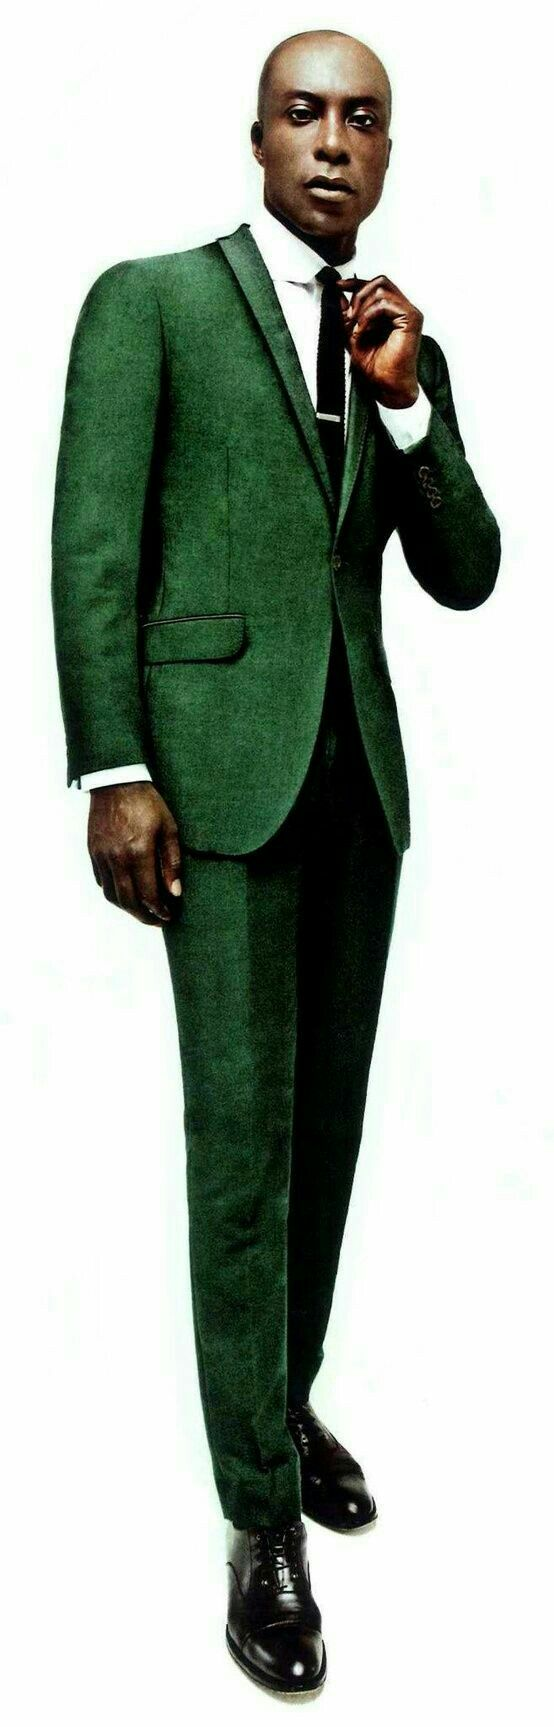 25 Best Ideas About Formal Suits For Men On Pinterest Men 39 S Suits Tuxedos And Suits